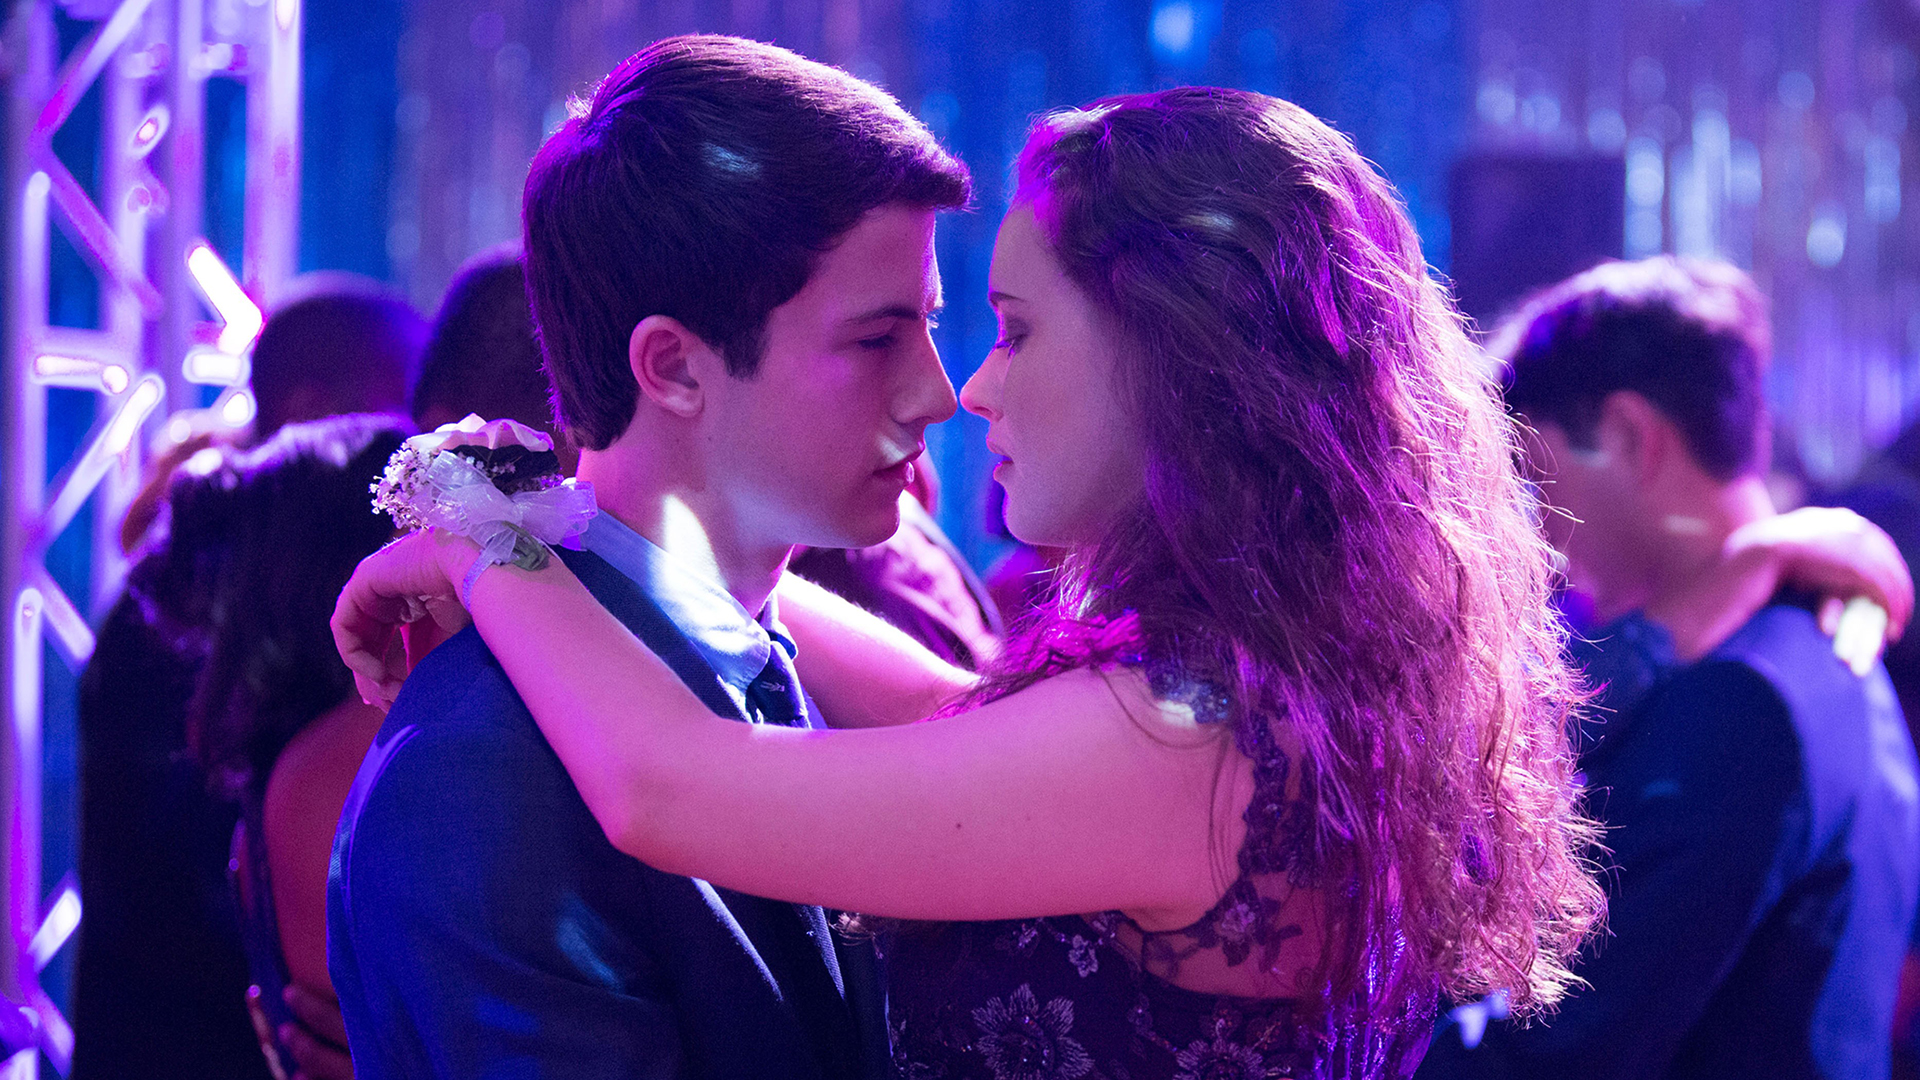 13 Reasons Why Psychiatrist Calls On Netflix To Pull Series